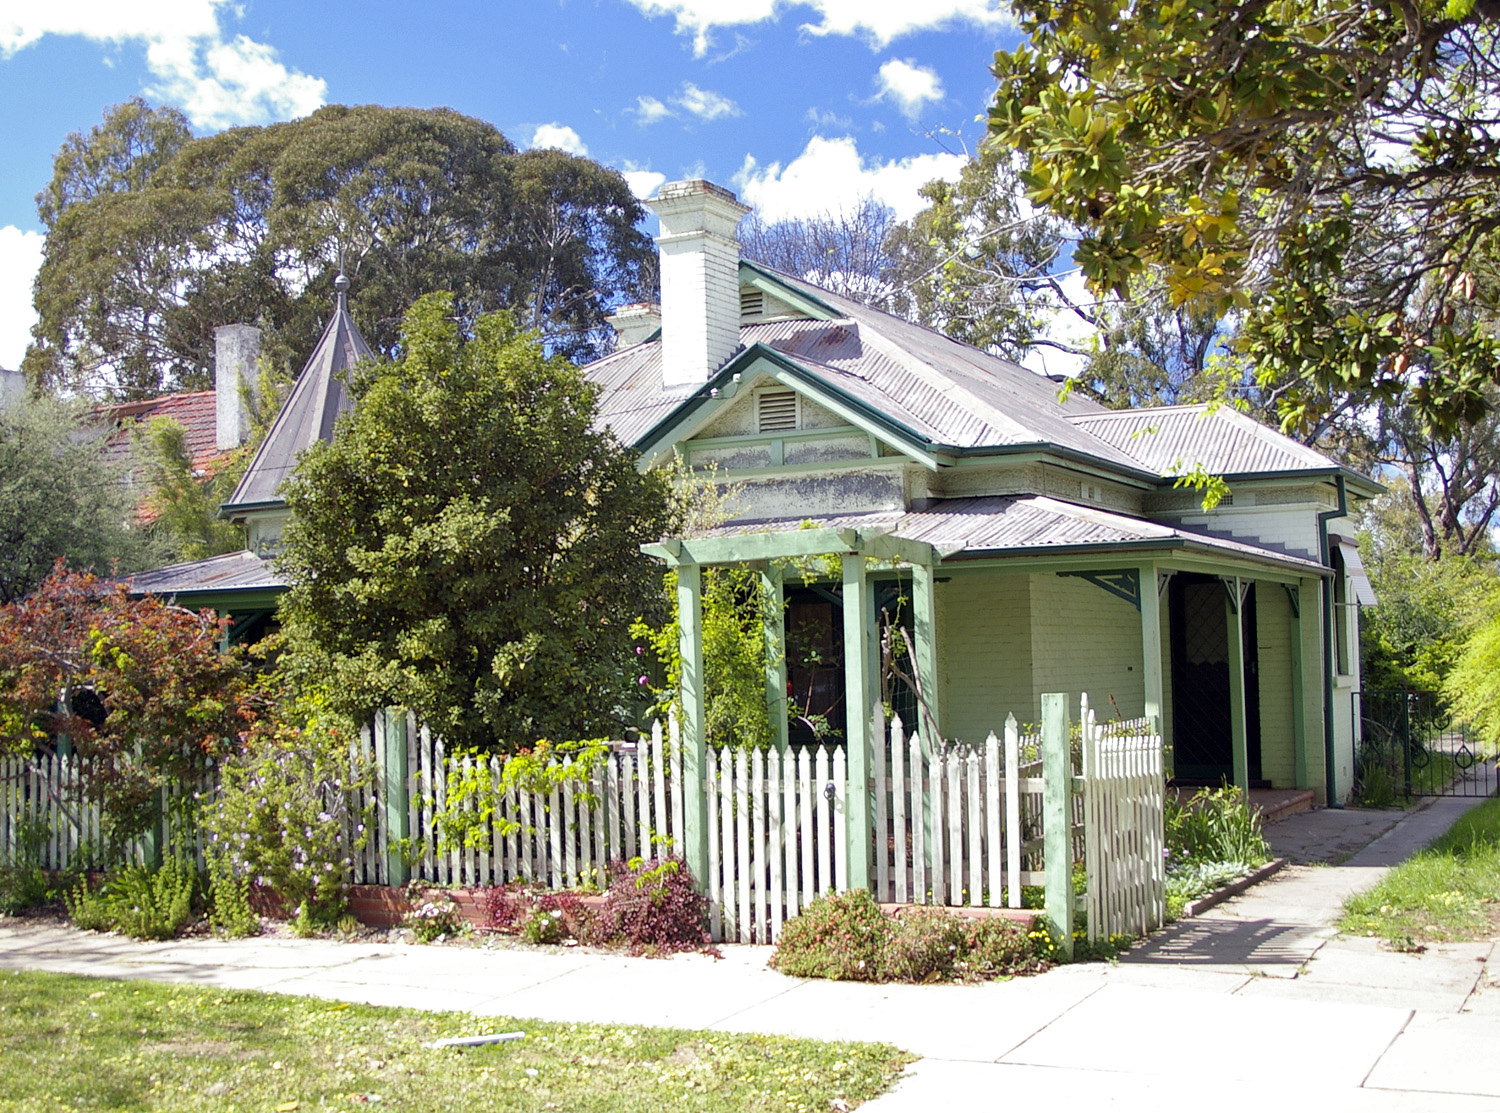 Californian Bungalow Style Homes Cottages And Bungalows